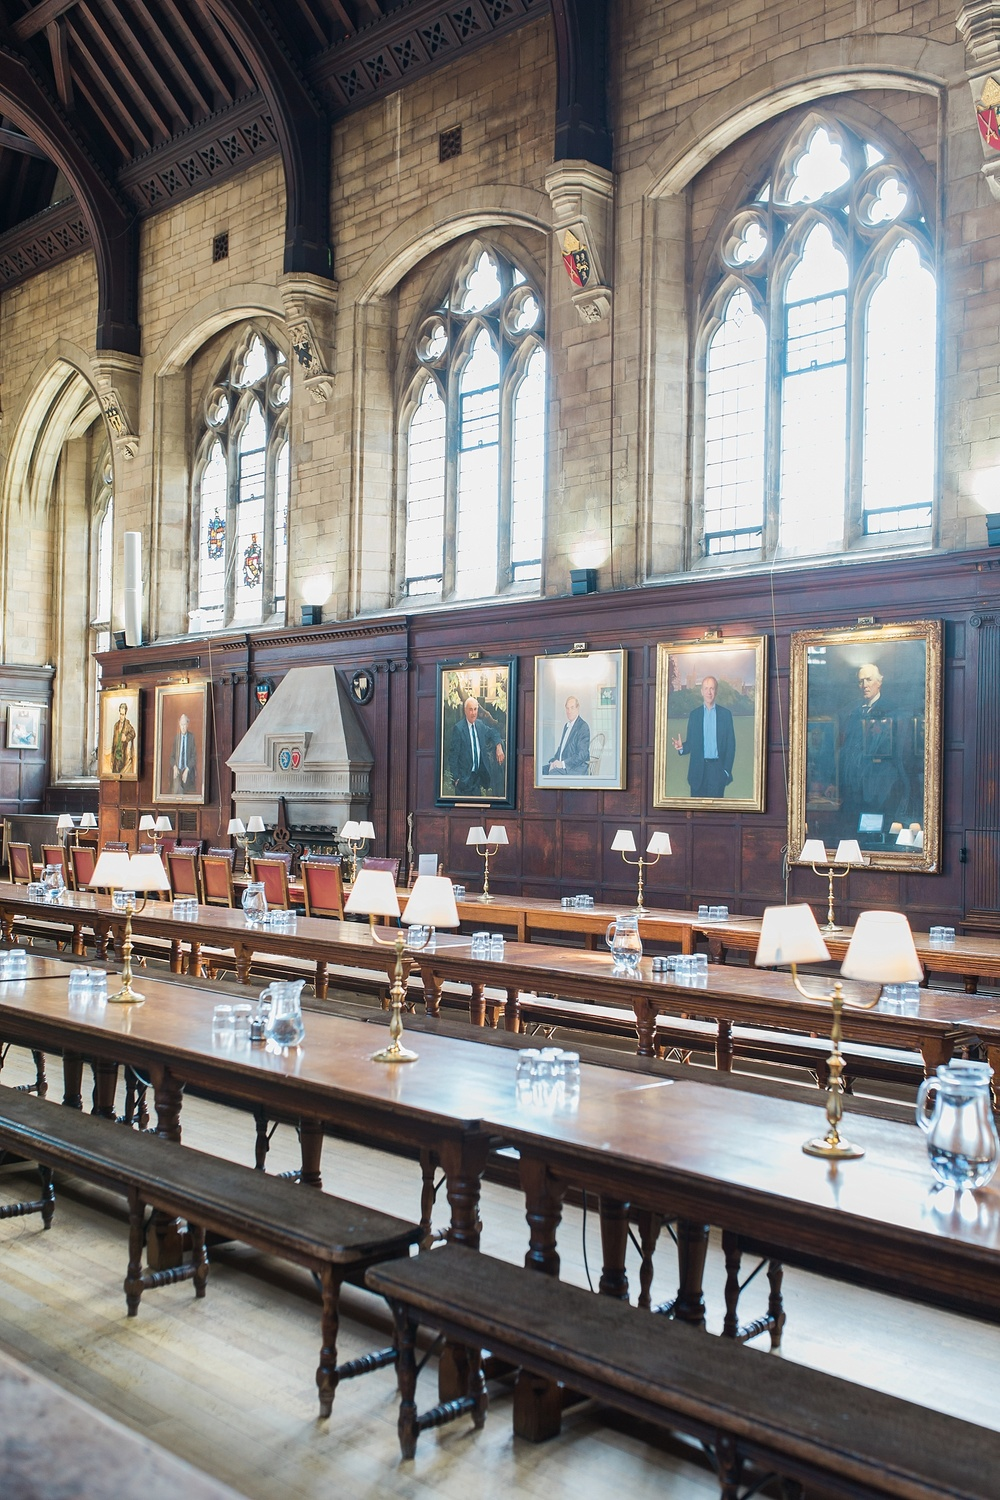 This particular dining hall in Balliol was actually the room that inspired the Harry Potter dining hall scenes.